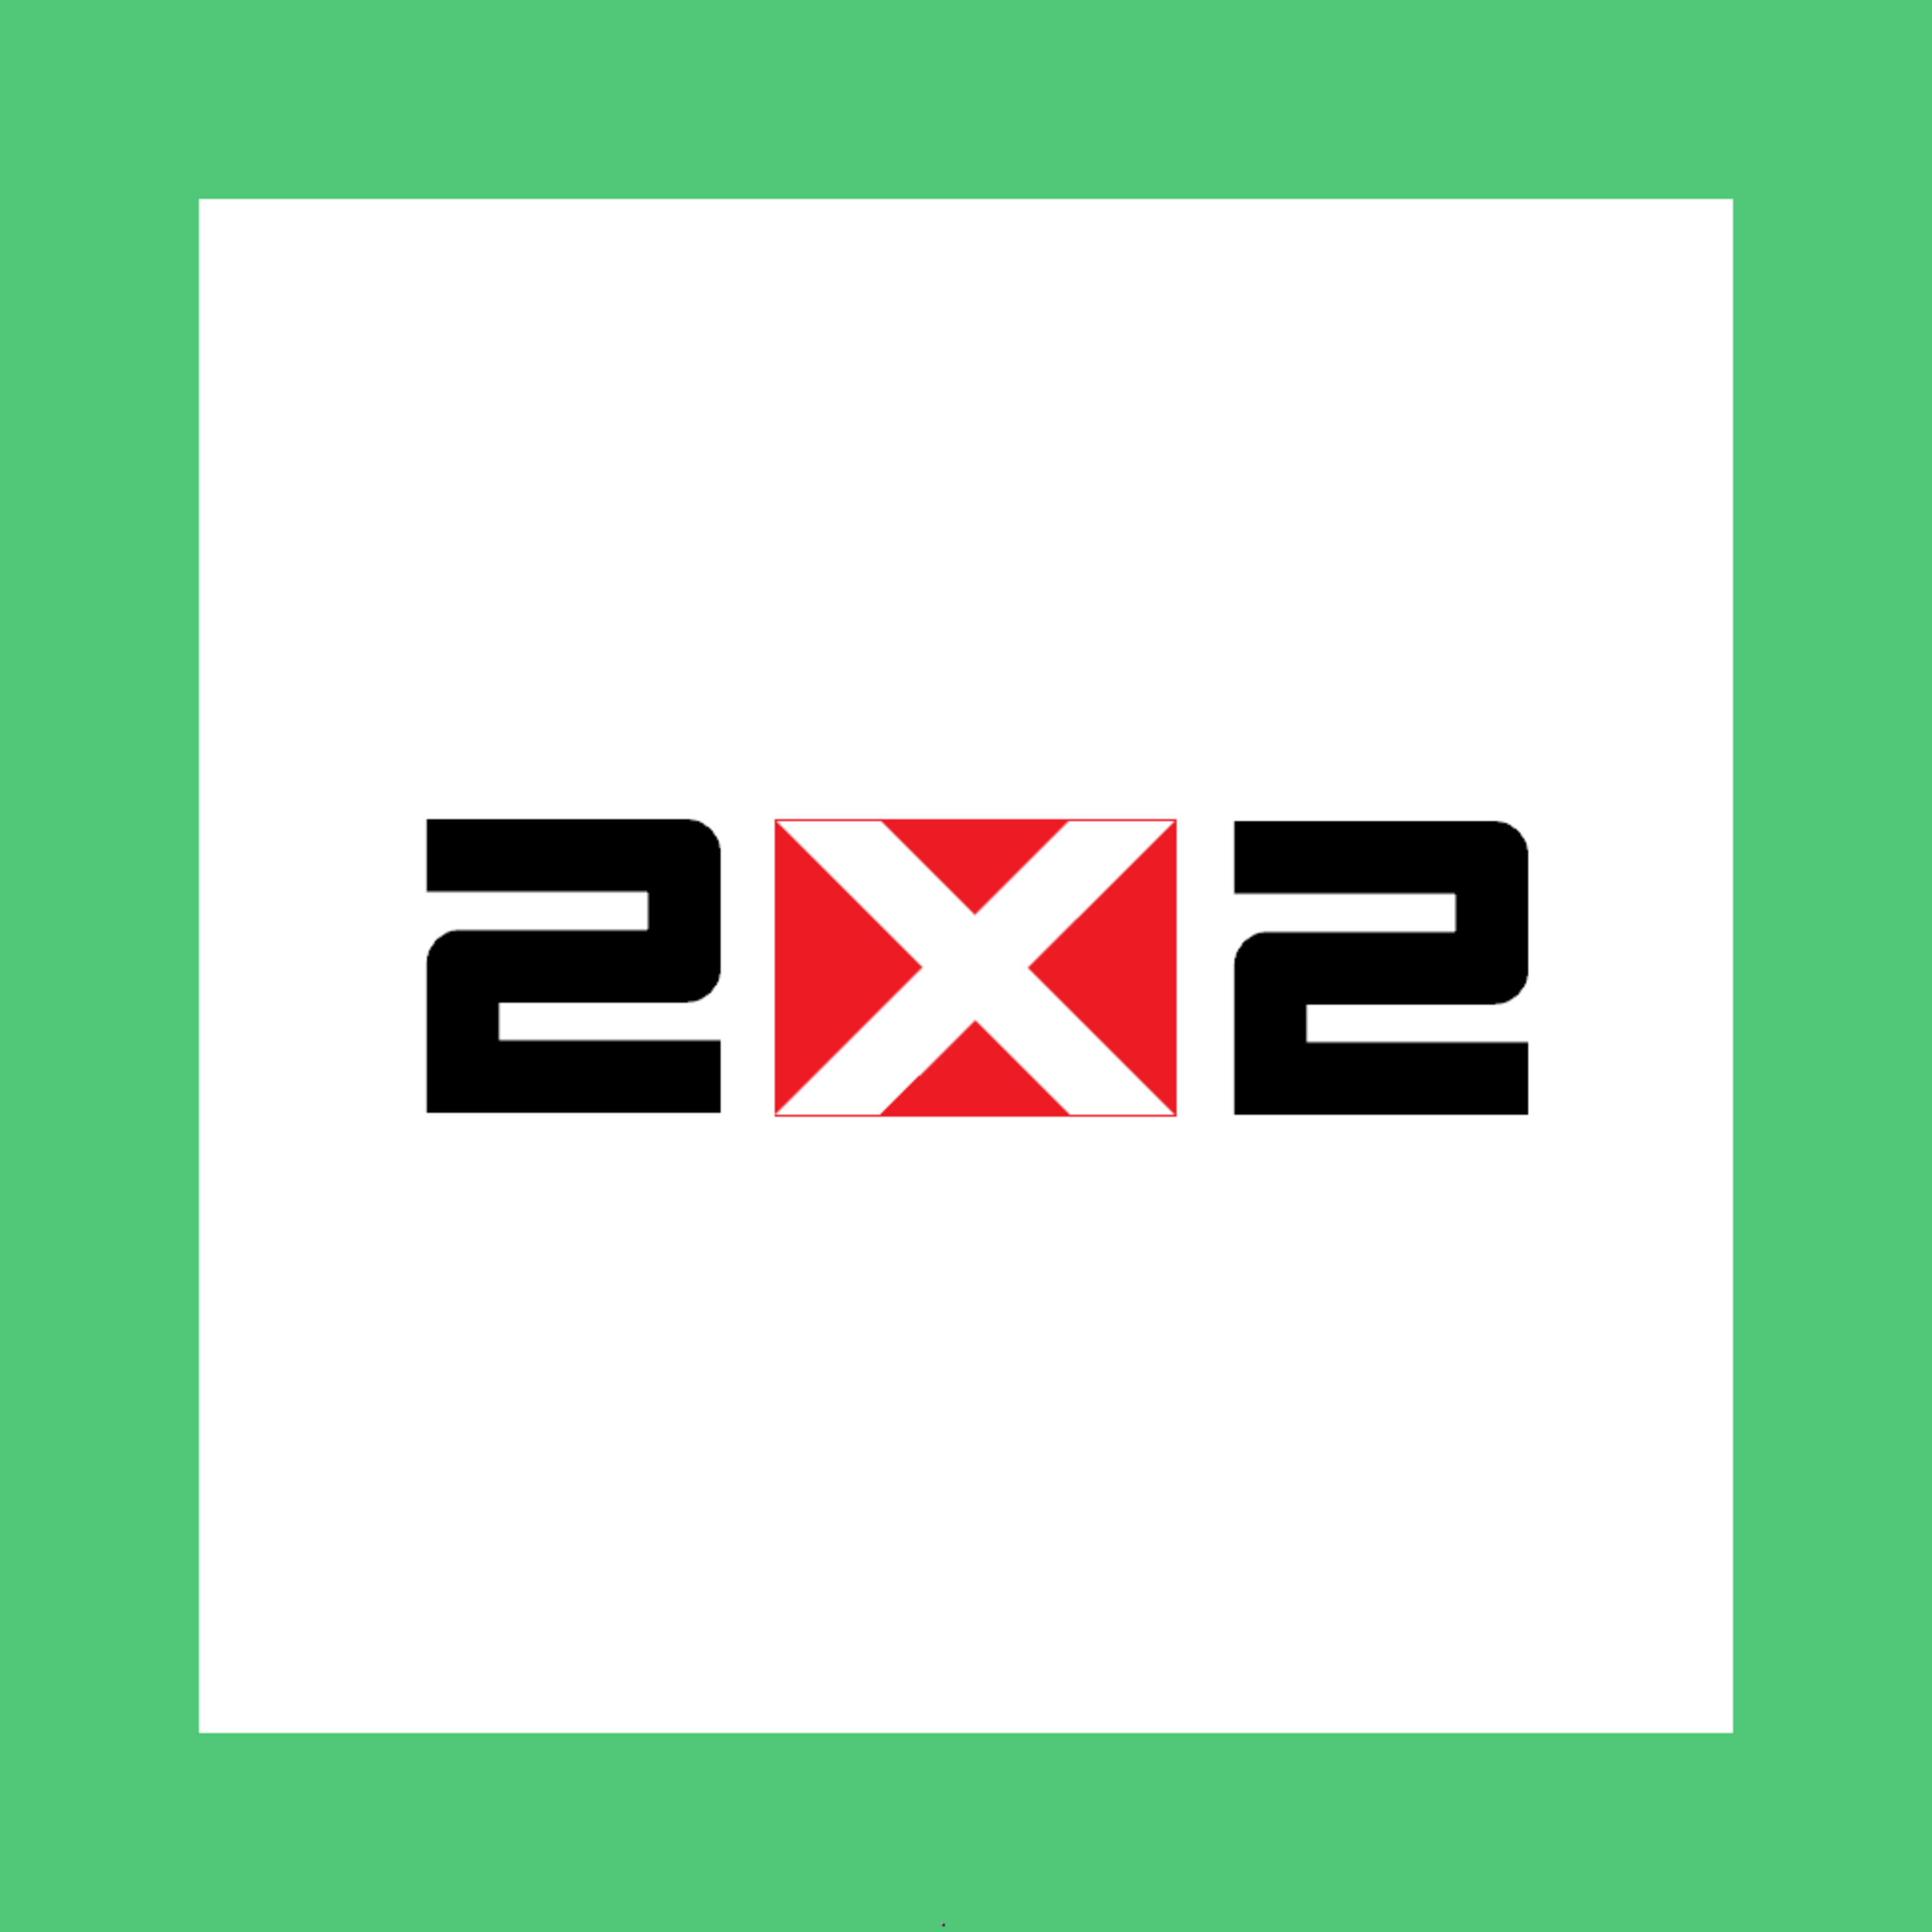 2x2 Episode 15 - The Young Master